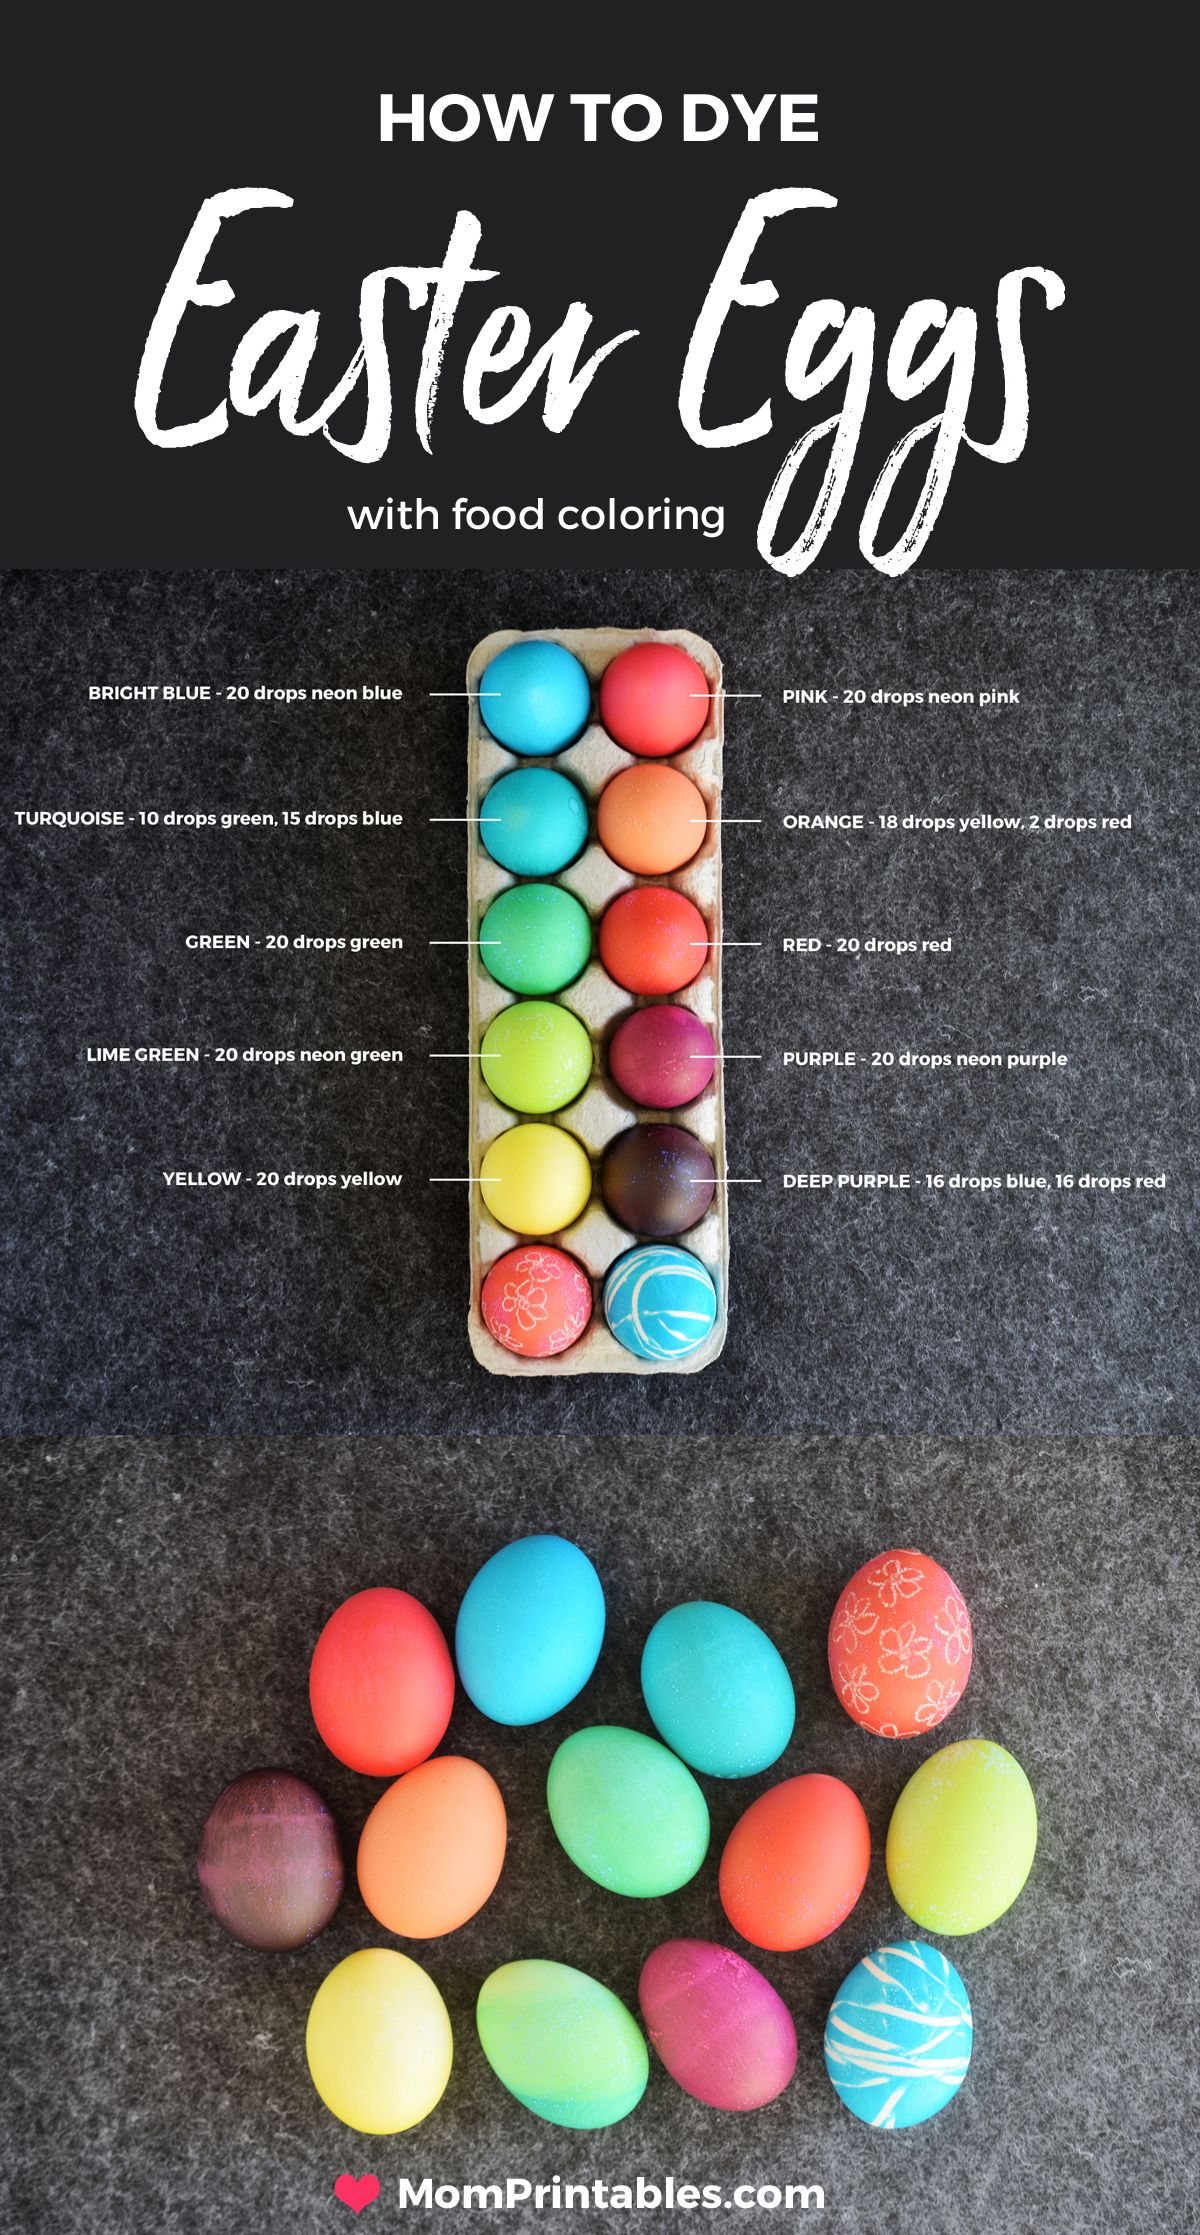 How To Dye Easter Eggs With Food Coloring Easter Crafts